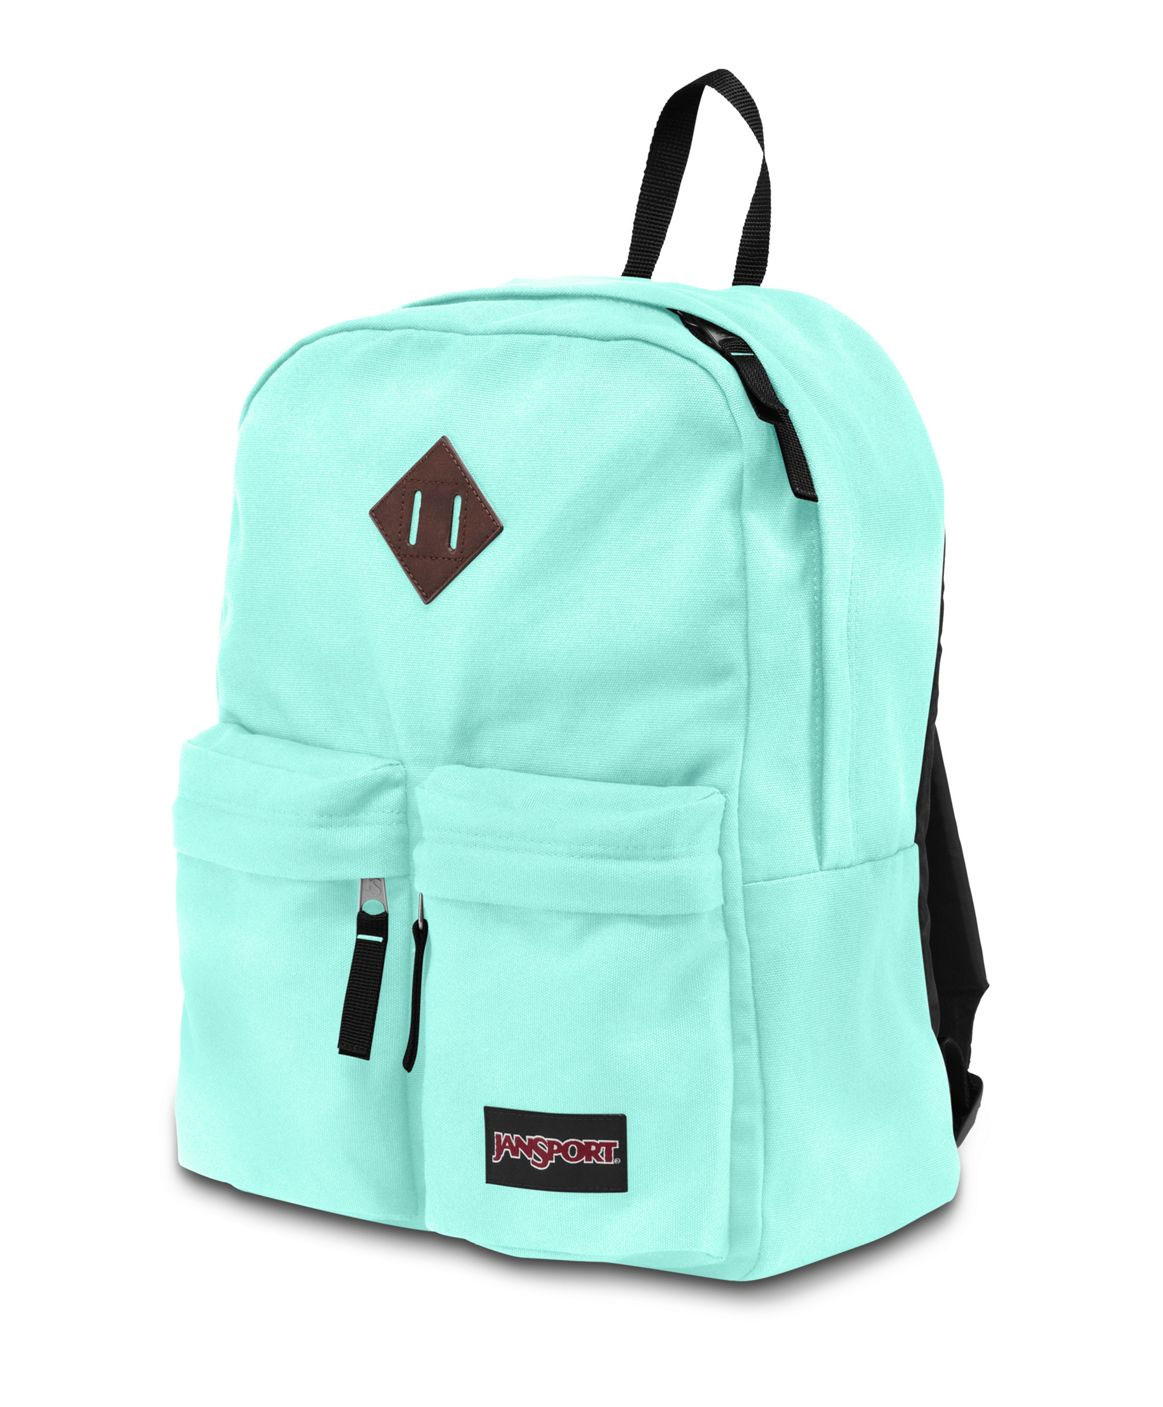 Where Can I Buy Jansport Backpacks icK3WTBN